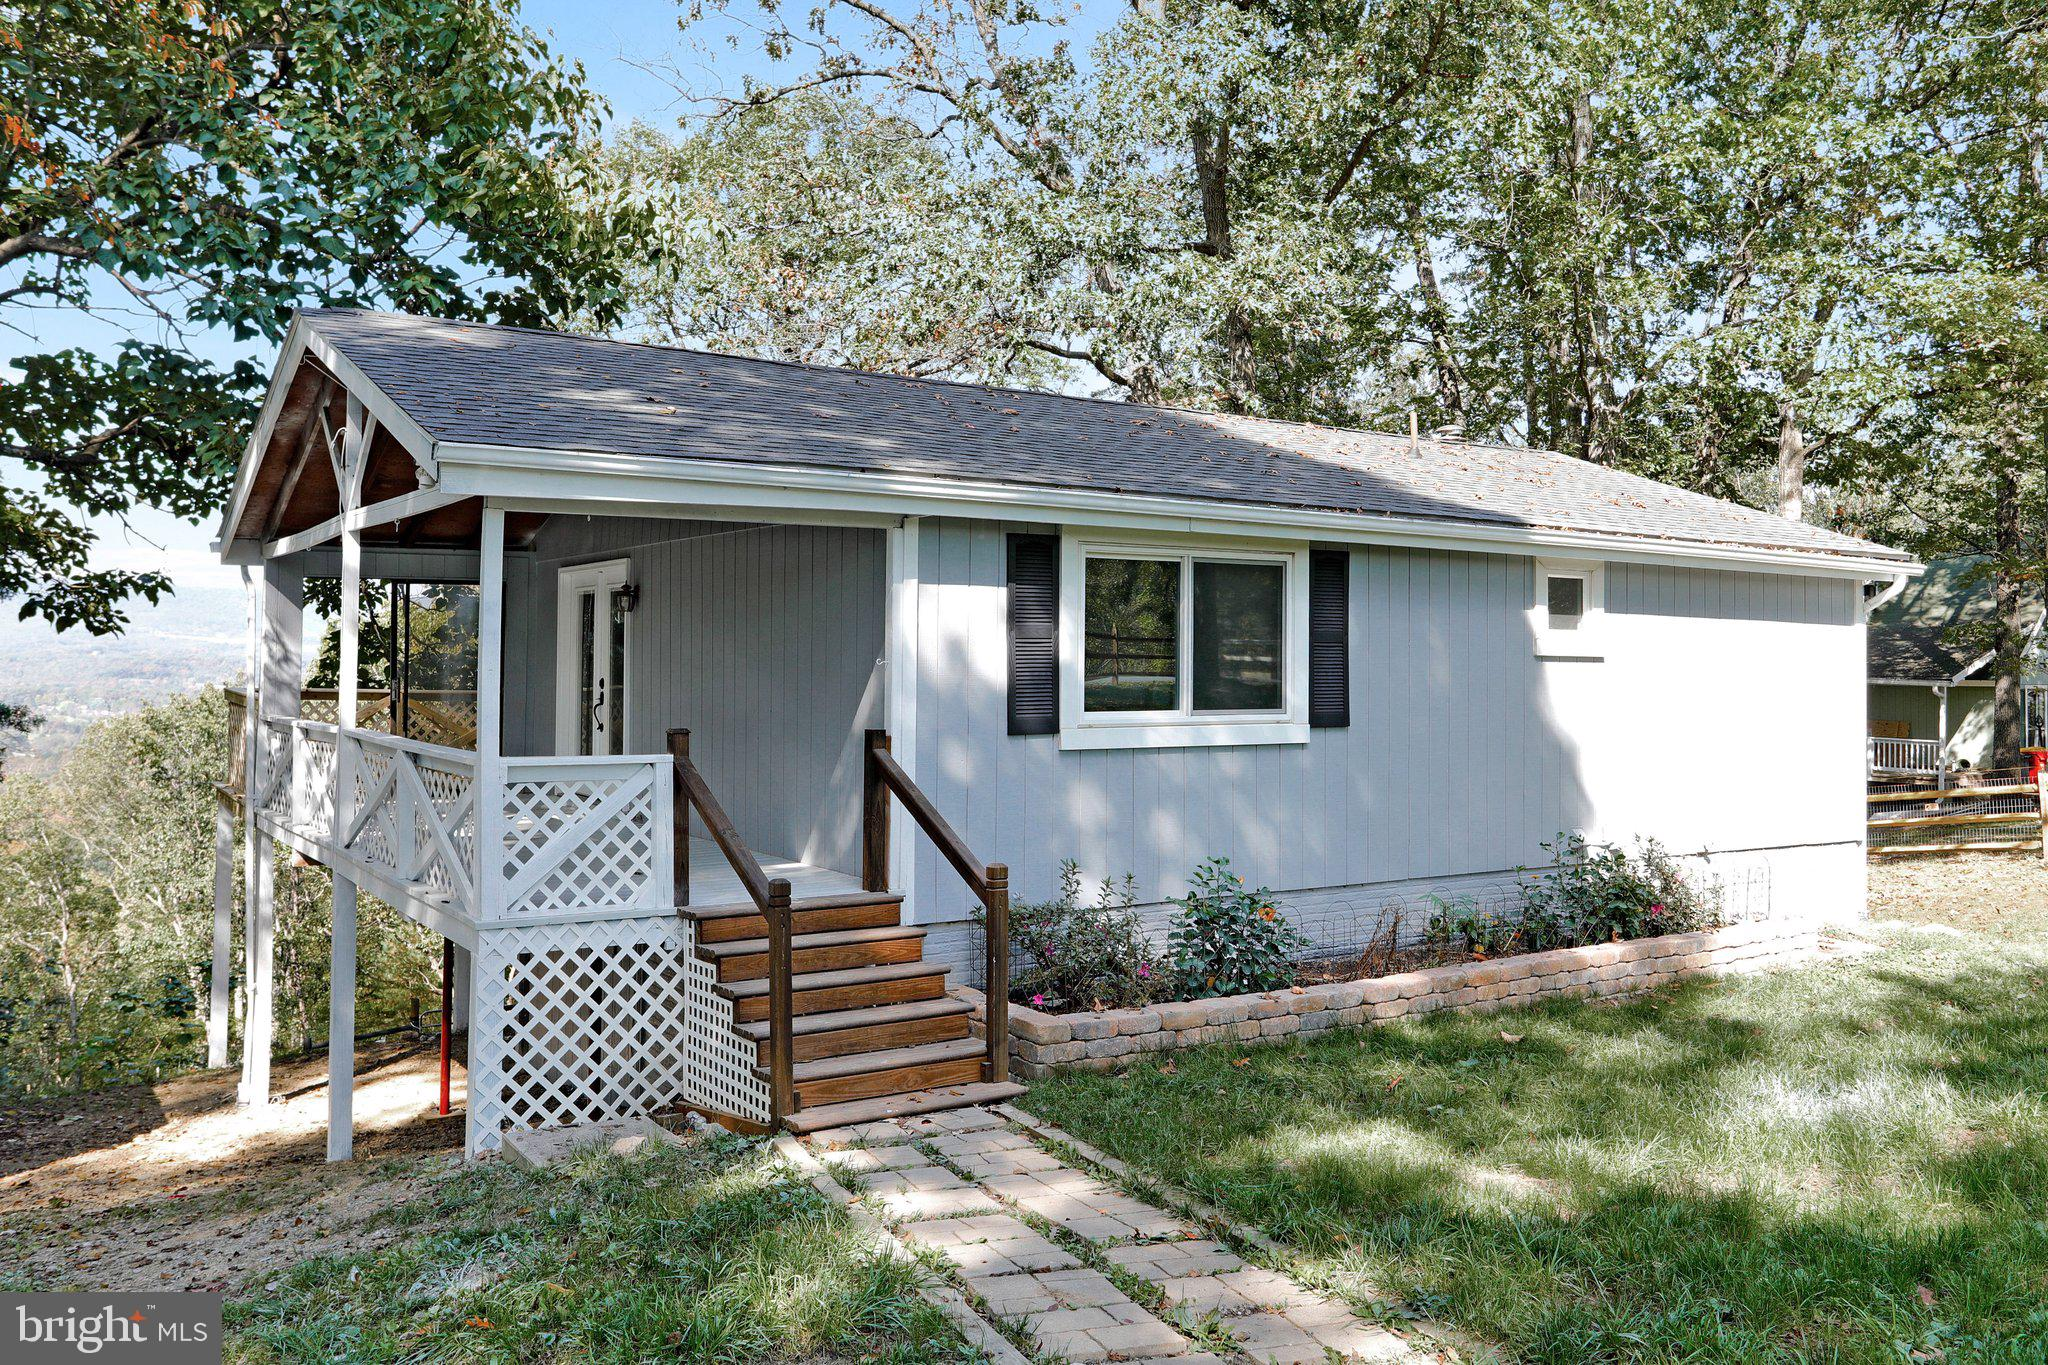 Looking for privacy but not total seclusion? Check out this 2 bedroom, 2 bath home on 1.34 acres loc